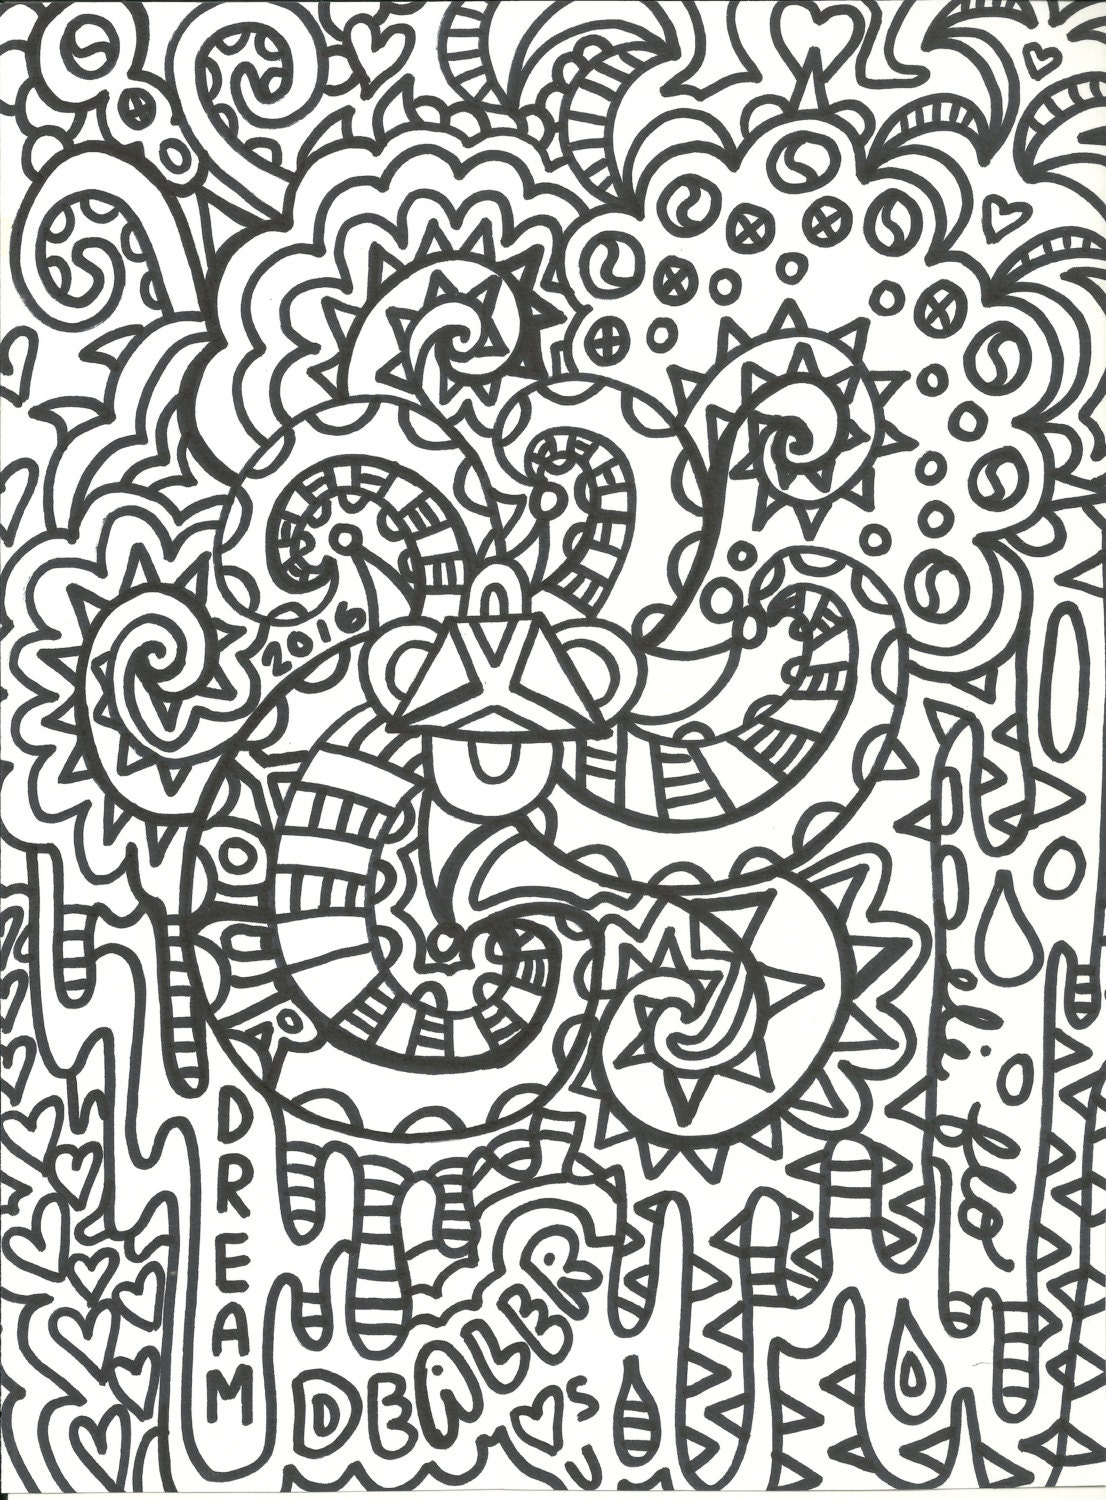 adult coloring book psychedelic unique designsdigital download 5 jpeg files print your own unlimited ydd art prints - Design Coloring Books